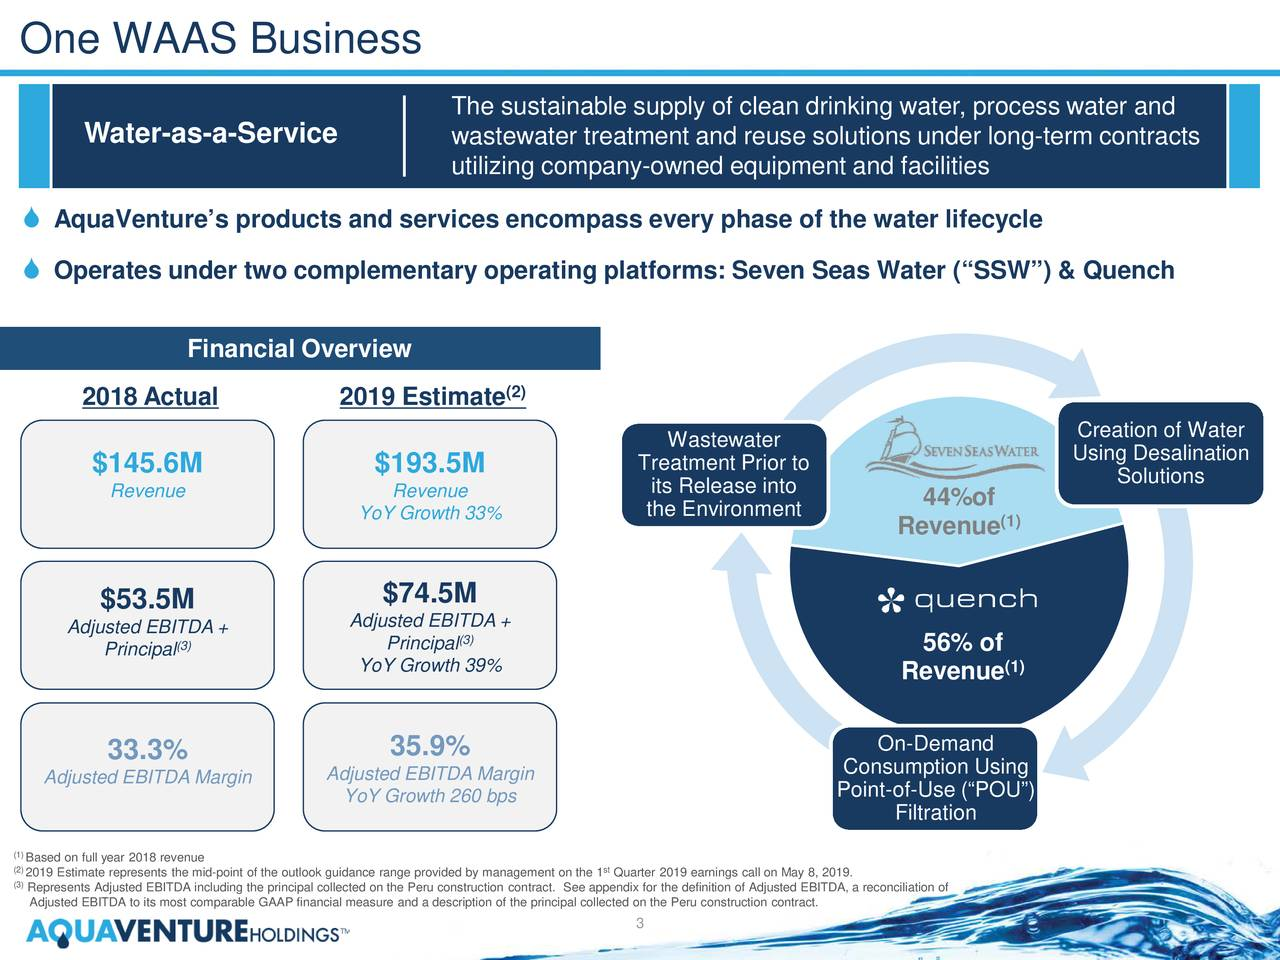 """The sustainable supply of clean drinking water, process water and Water-as-a-Service wastewater treatment and reuse solutions under long-term contracts utilizing company-owned equipment and facilities  AquaVenture's products and services encompass every phase of the water lifecycle  Operates under two complementary operating platforms: Seven Seas Water (""""SSW"""") & Quench Financial Overview (2) 2018 Actual 2019 Estimate Creation of Water Wastewater $145.6M $193.5M Treatment Prior to Using Desalination Revenue Revenue its Release into Solutions YoY Growth 33% the Environment 44%of Revenue (1) $74.5M $53.5M Adjusted EBITDA + Adjusted EBITDA + Principal) Principal) 56% of YoY Growth 39% Revenue (1) 33.3% 35.9% On-Demand Adjusted EBITDA Margin Adjusted EBITDA Margin Consumption Using YoY Growth 260 bps Point-of-Use (""""POU"""") Filtration (Based on full year 2018 revenue (3)19 Estimate represents the mid-point of the outlook guidance range provided by management on the 1 Quarter 2019 earnings call on May 8, 2019. RAdjusted EBITDA to its most comparable GAAP financial measure and a description of the principal collected on the Peru constr uction contract.TDA, a reconciliation of 3"""